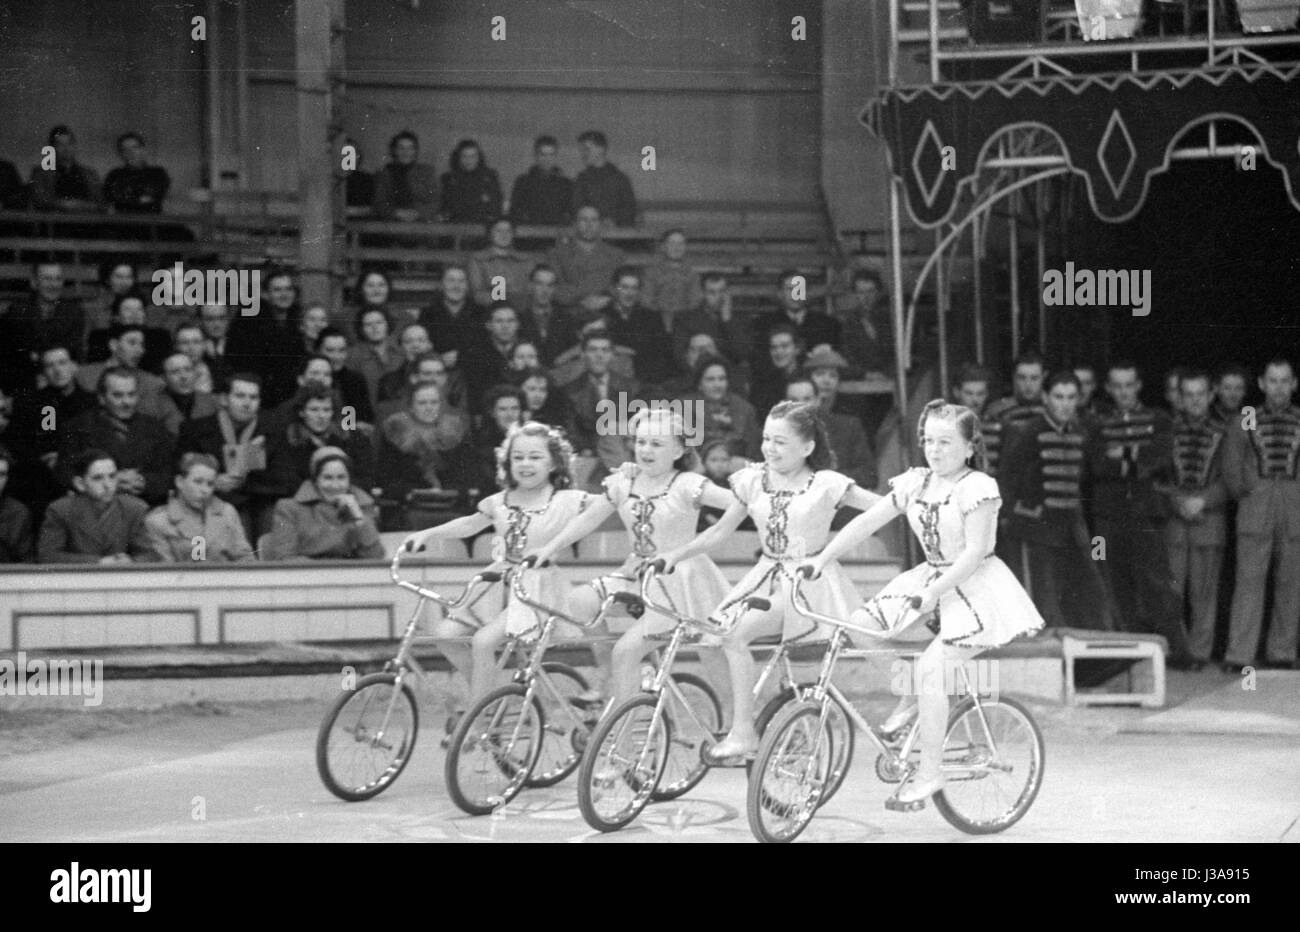 Midgets perform in a circus, 1953 - Stock Image